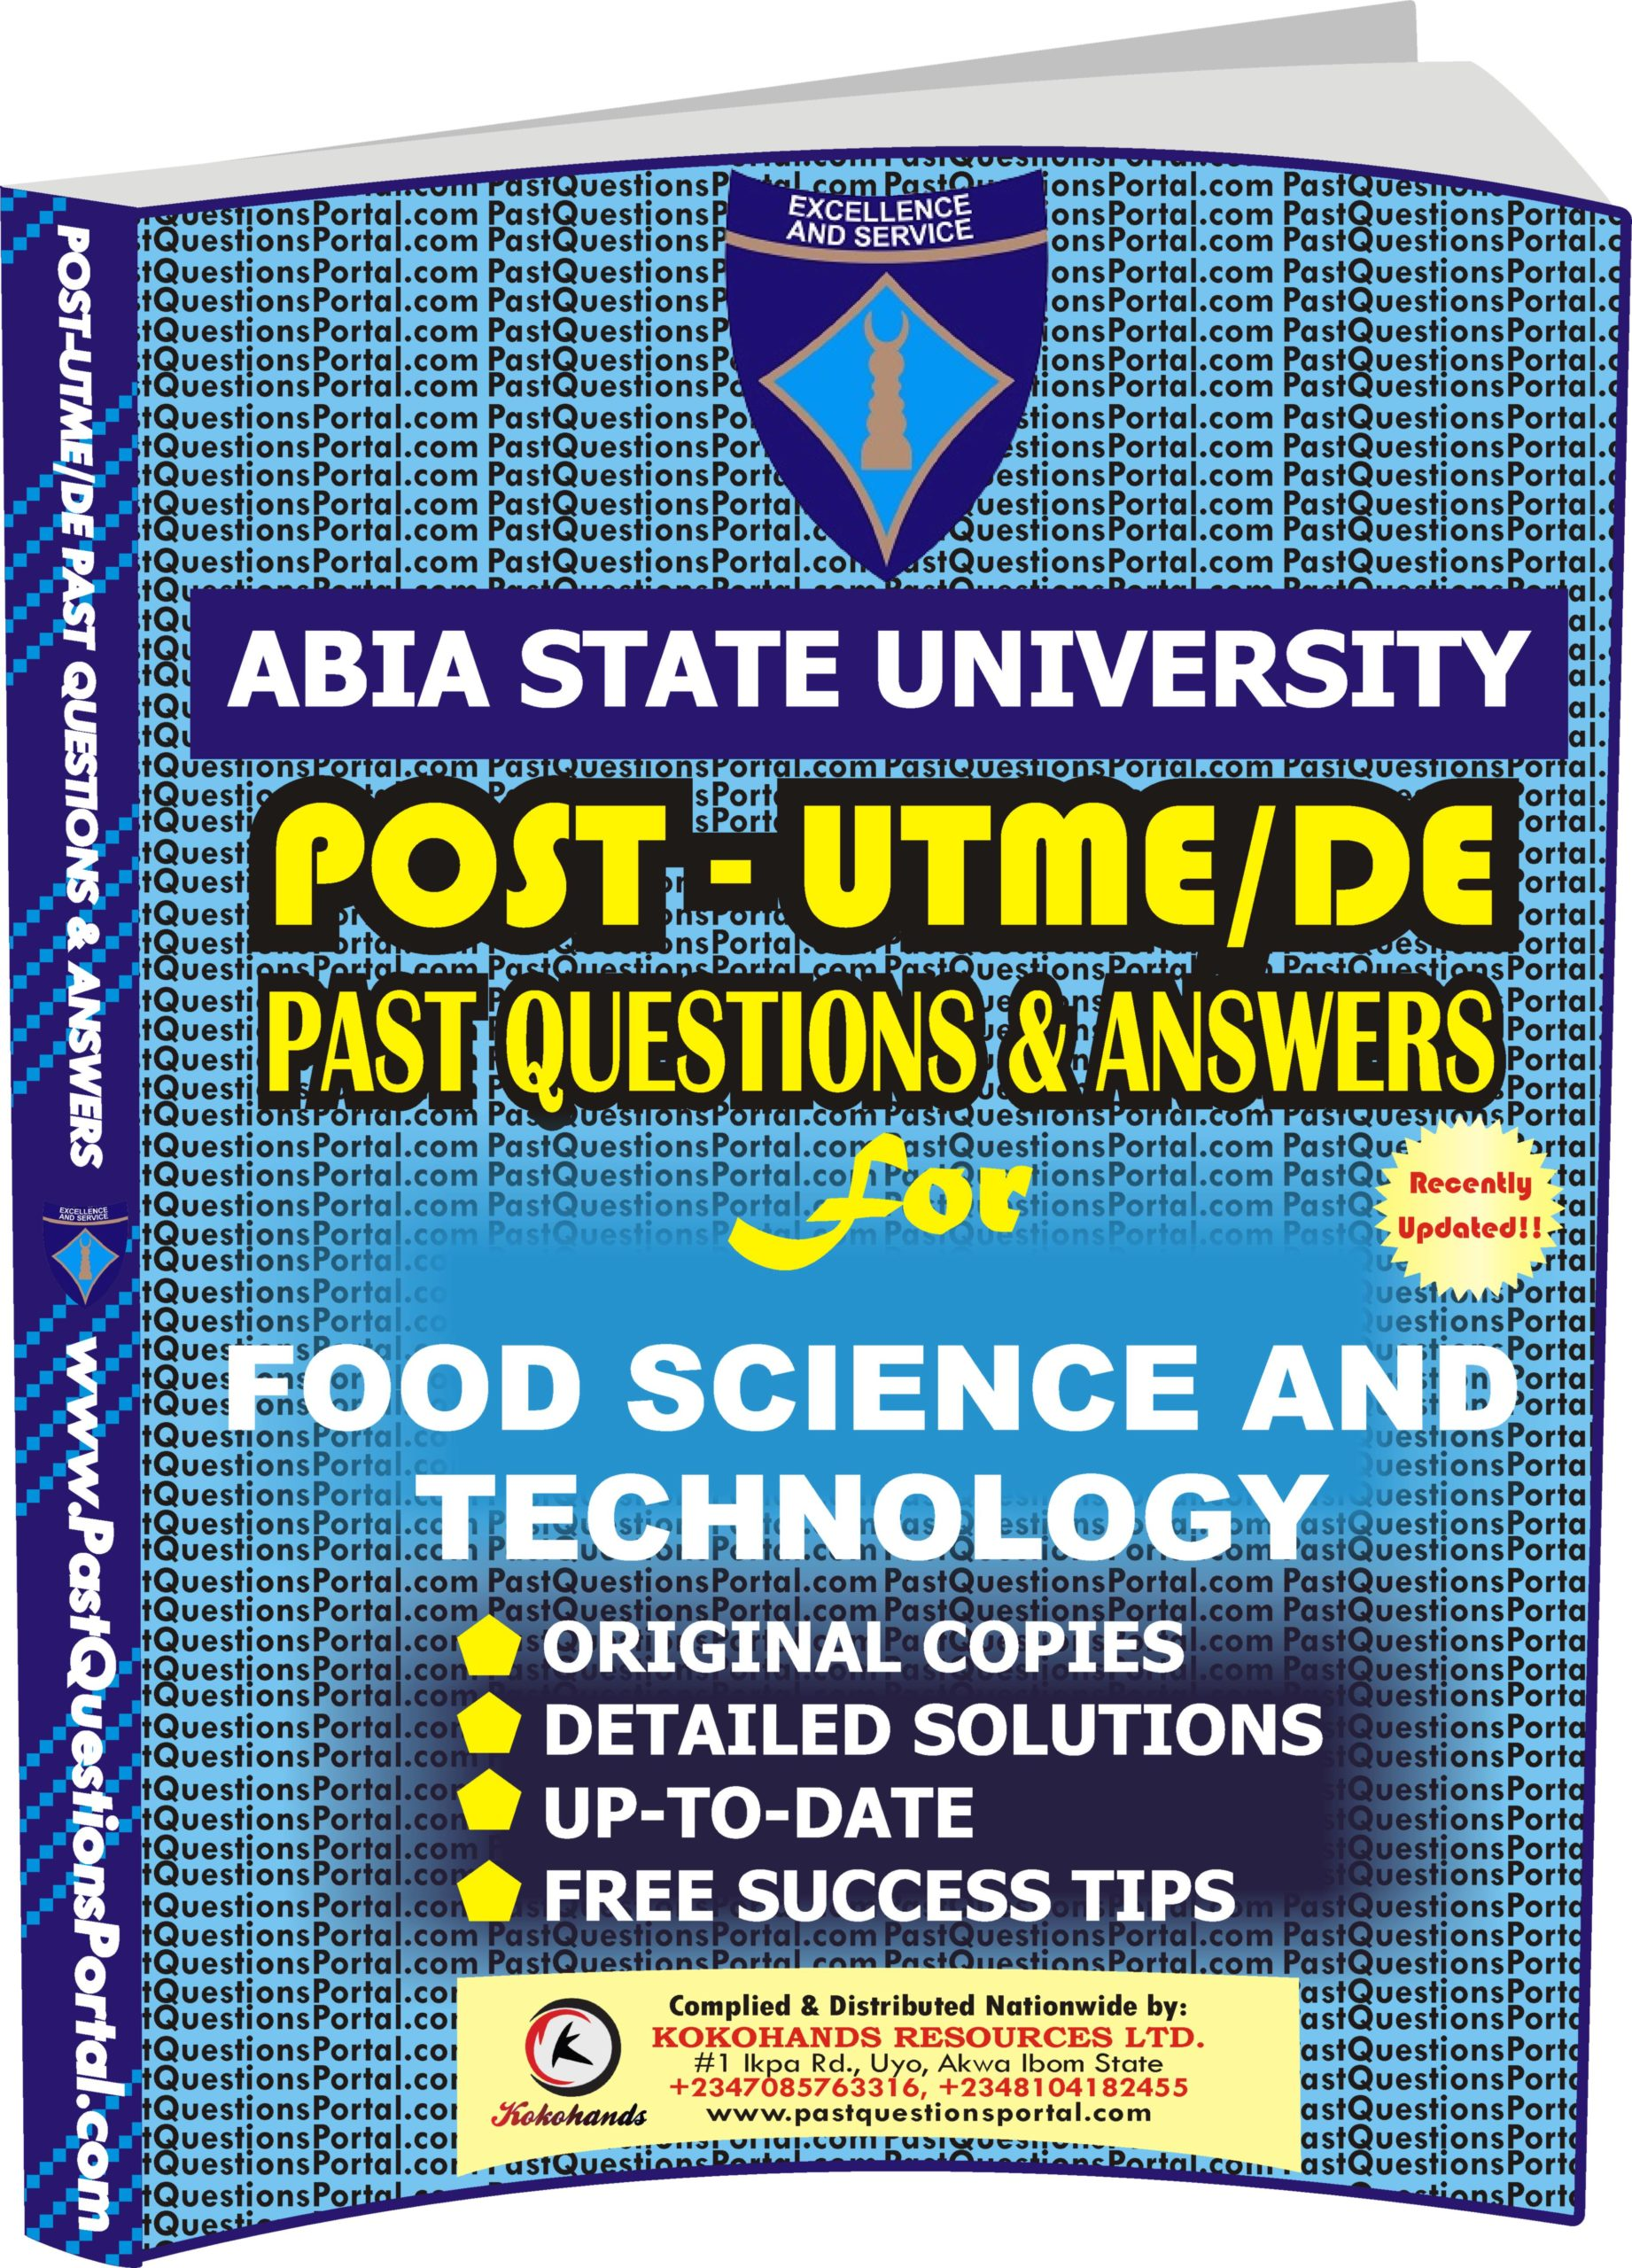 ABSU Post UTME Past Questions for FOOD SCIENCE AND TECHNOLOGY